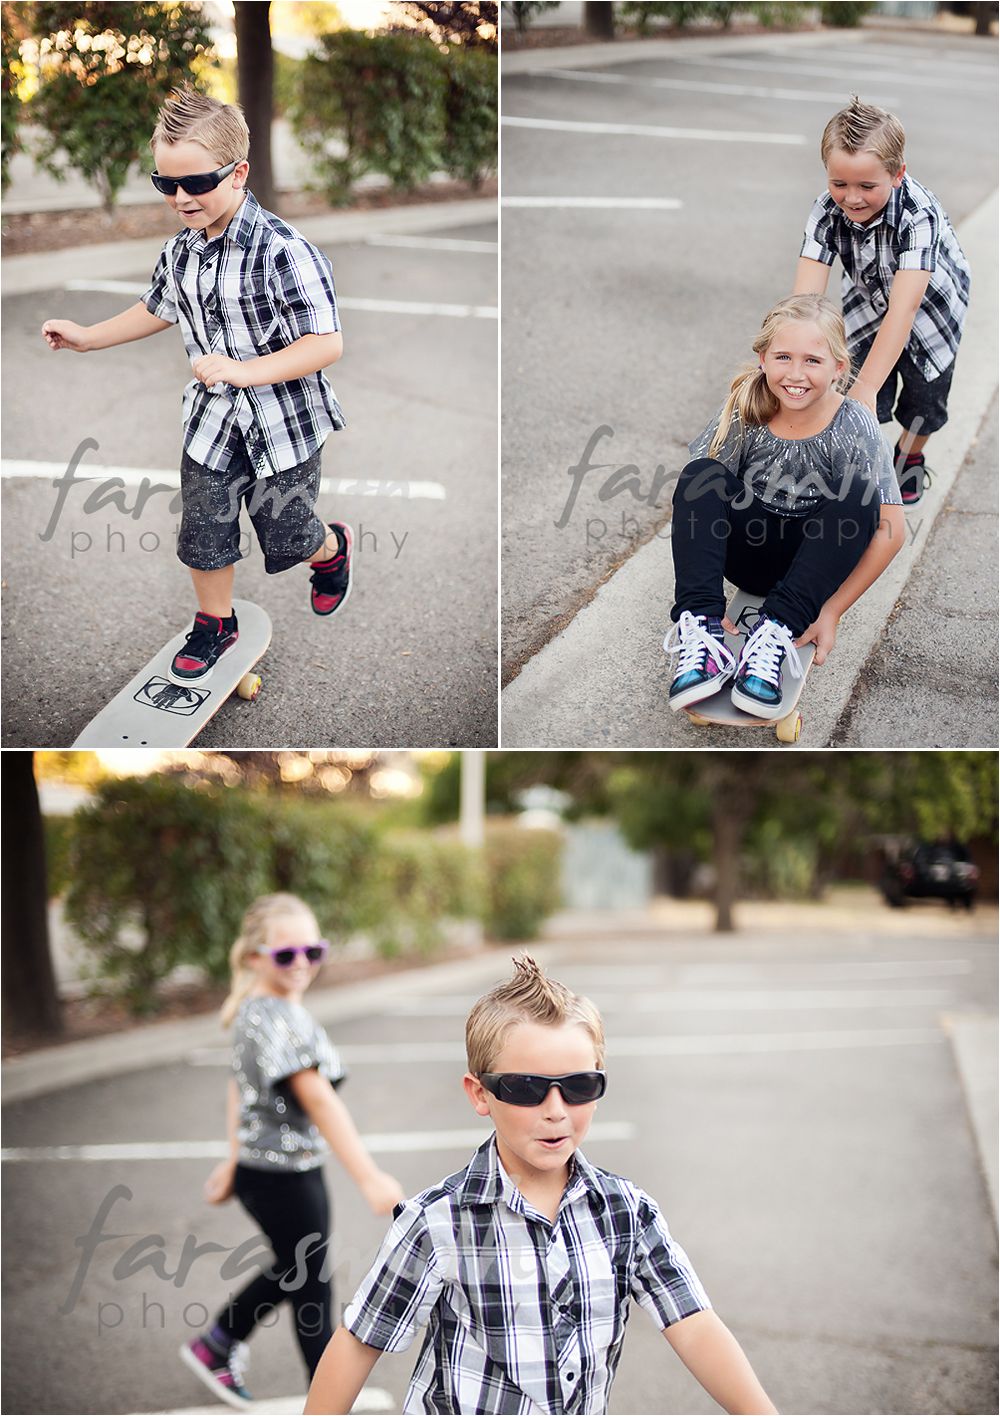 Bring props, like a skateboard to help style your shoot and make it unique!